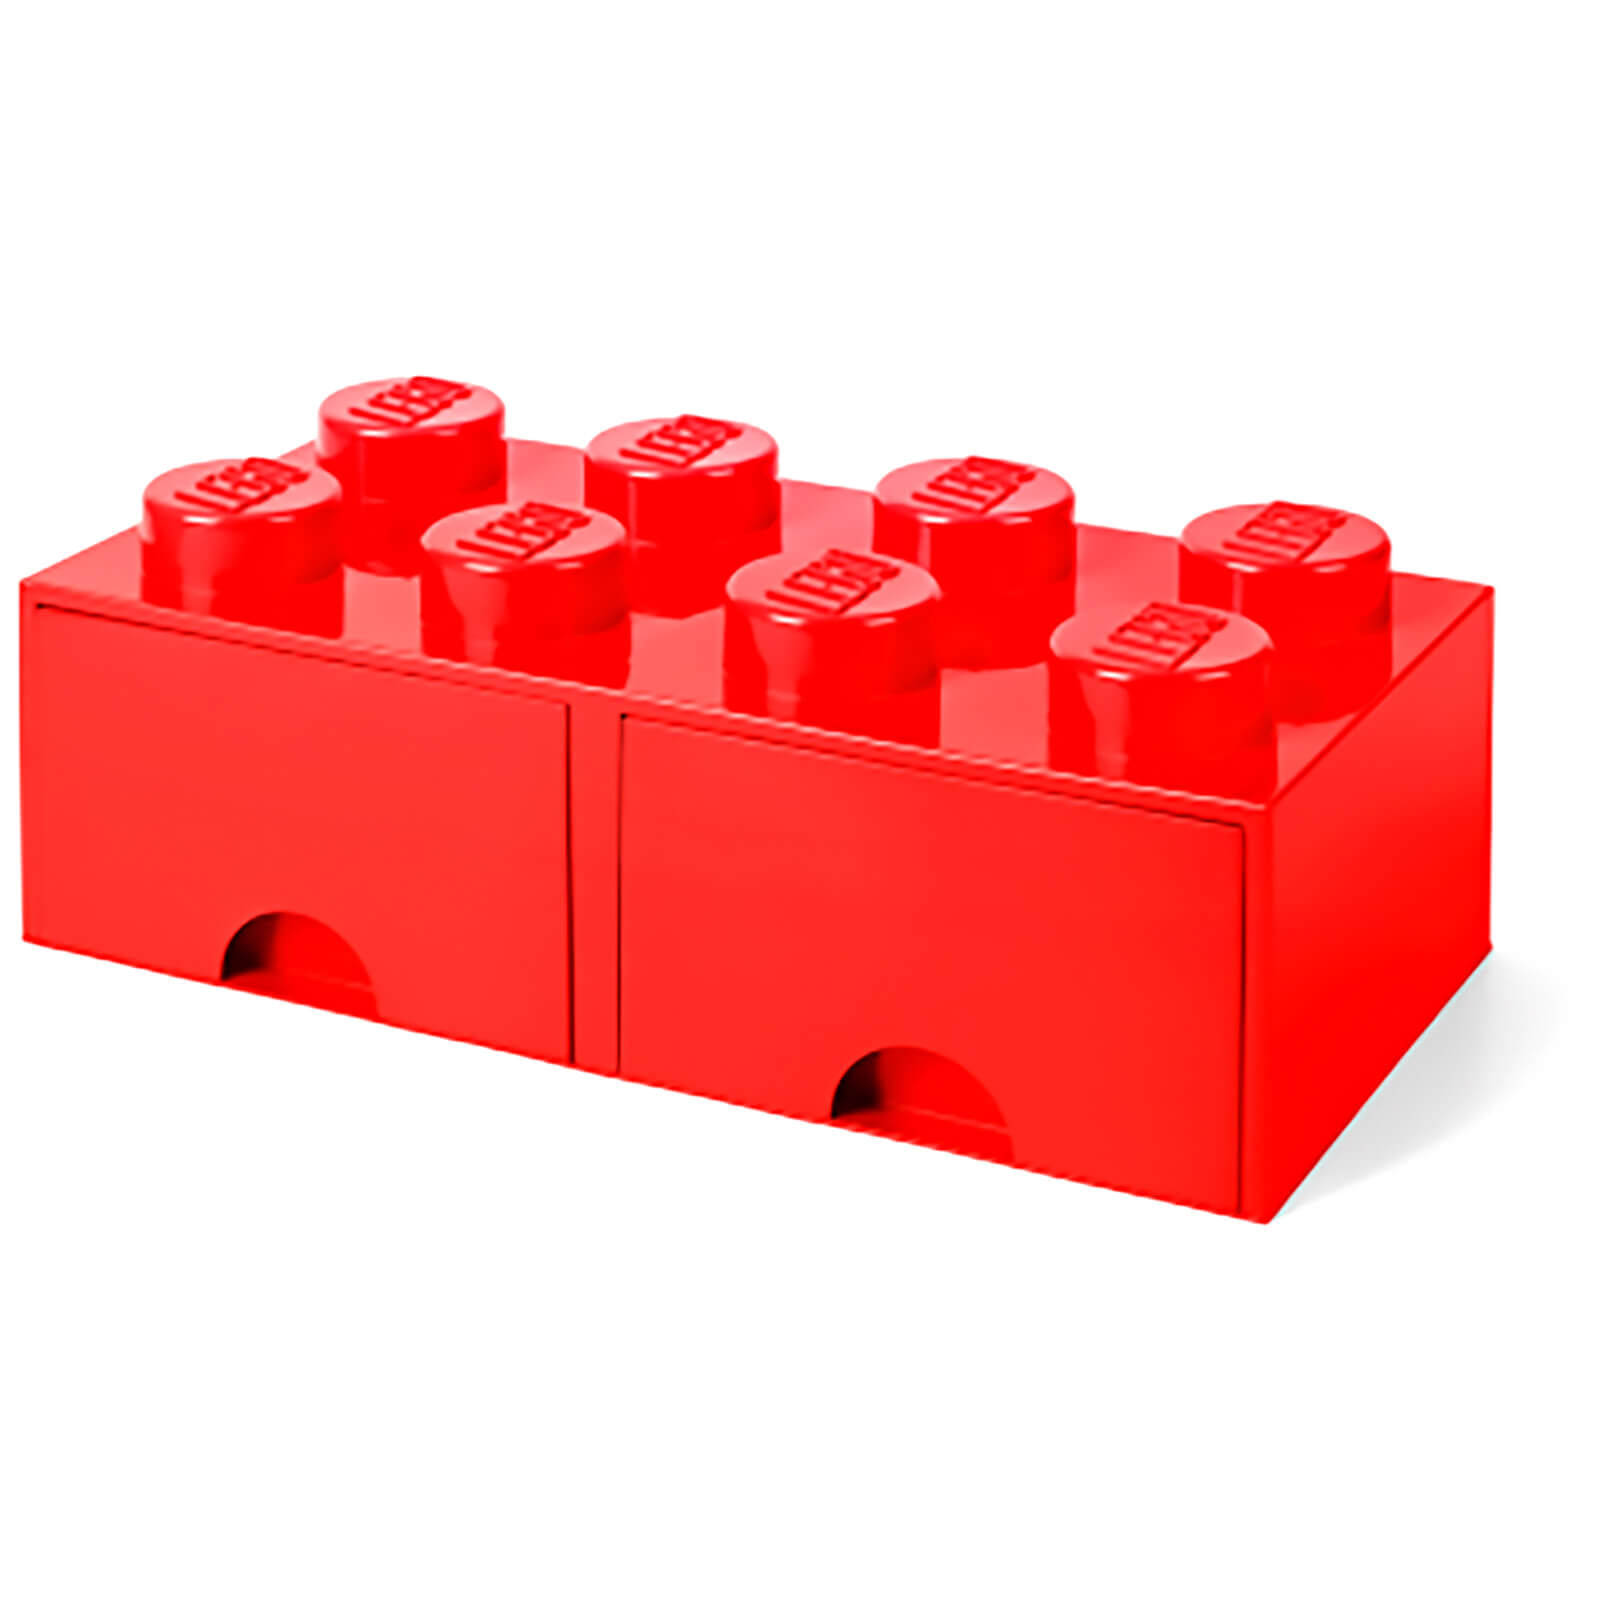 lego storage 8 knob brick 2 drawers bright red iwoot. Black Bedroom Furniture Sets. Home Design Ideas